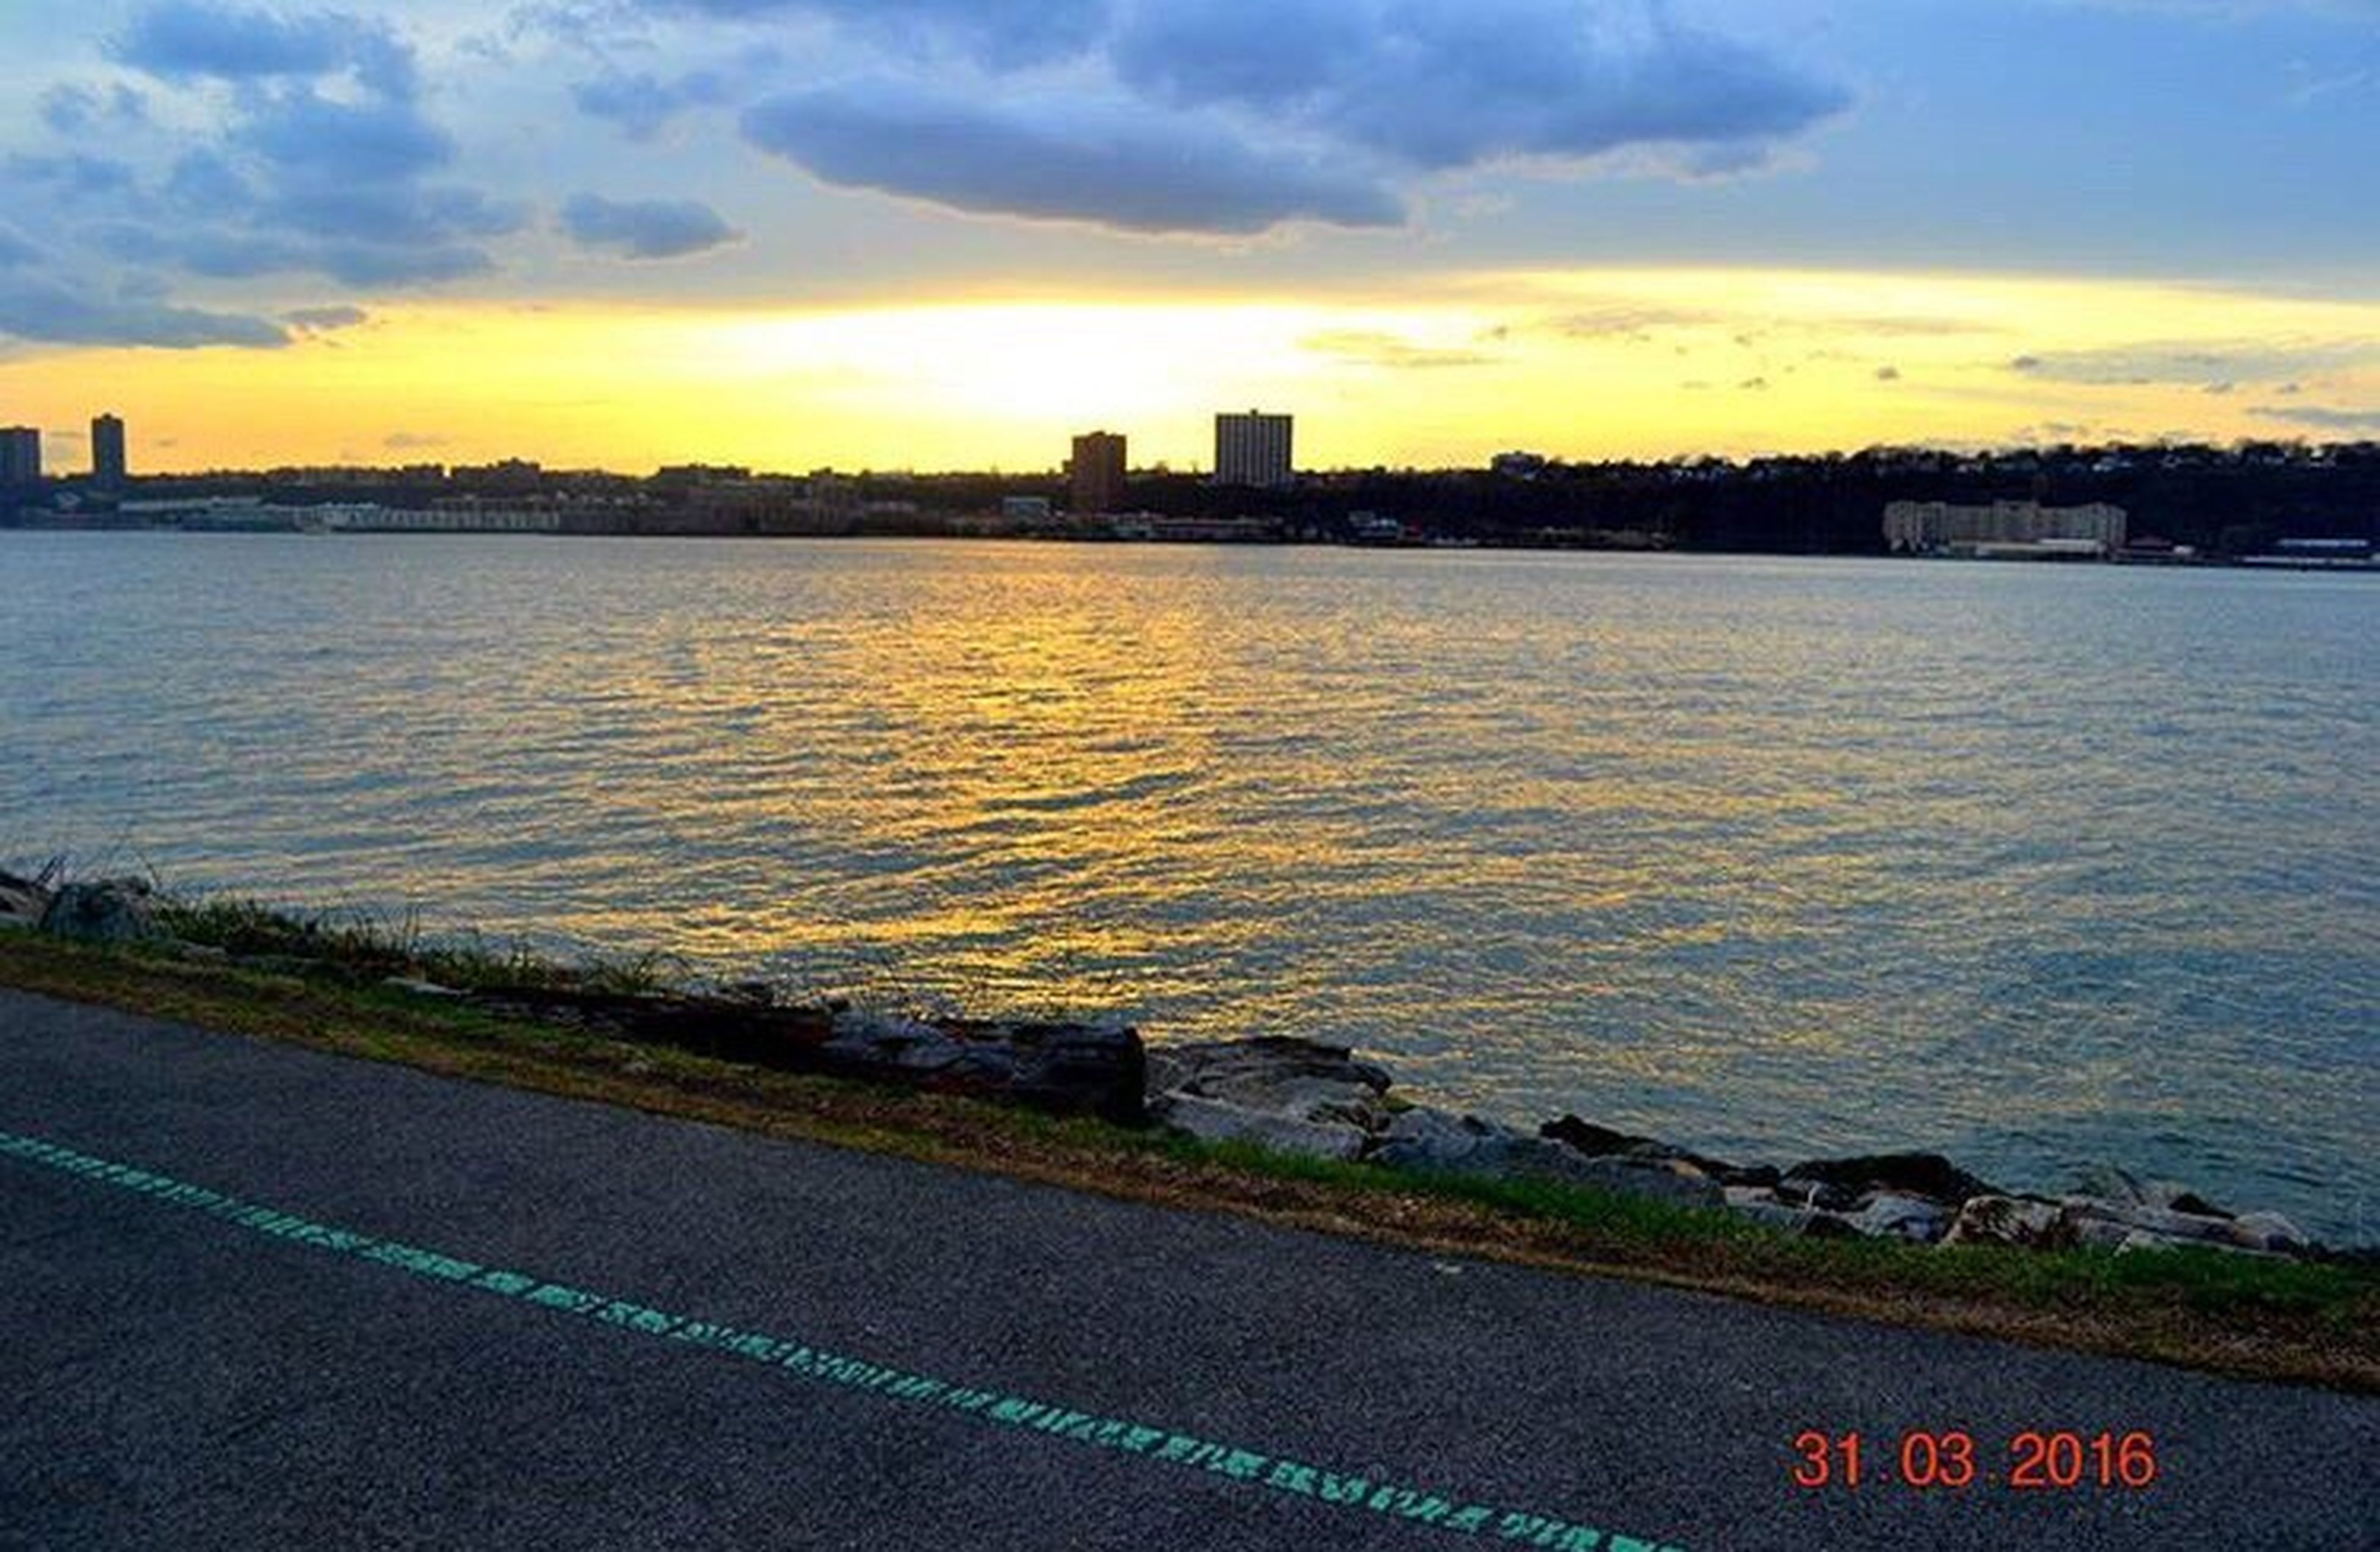 sunset, water, city, building exterior, architecture, scenics, sky, travel destinations, distant, cloud - sky, sea, tranquil scene, river, tranquility, outdoors, nature, calm, blue, beauty in nature, dramatic sky, urban skyline, city life, ocean, tourism, majestic, no people